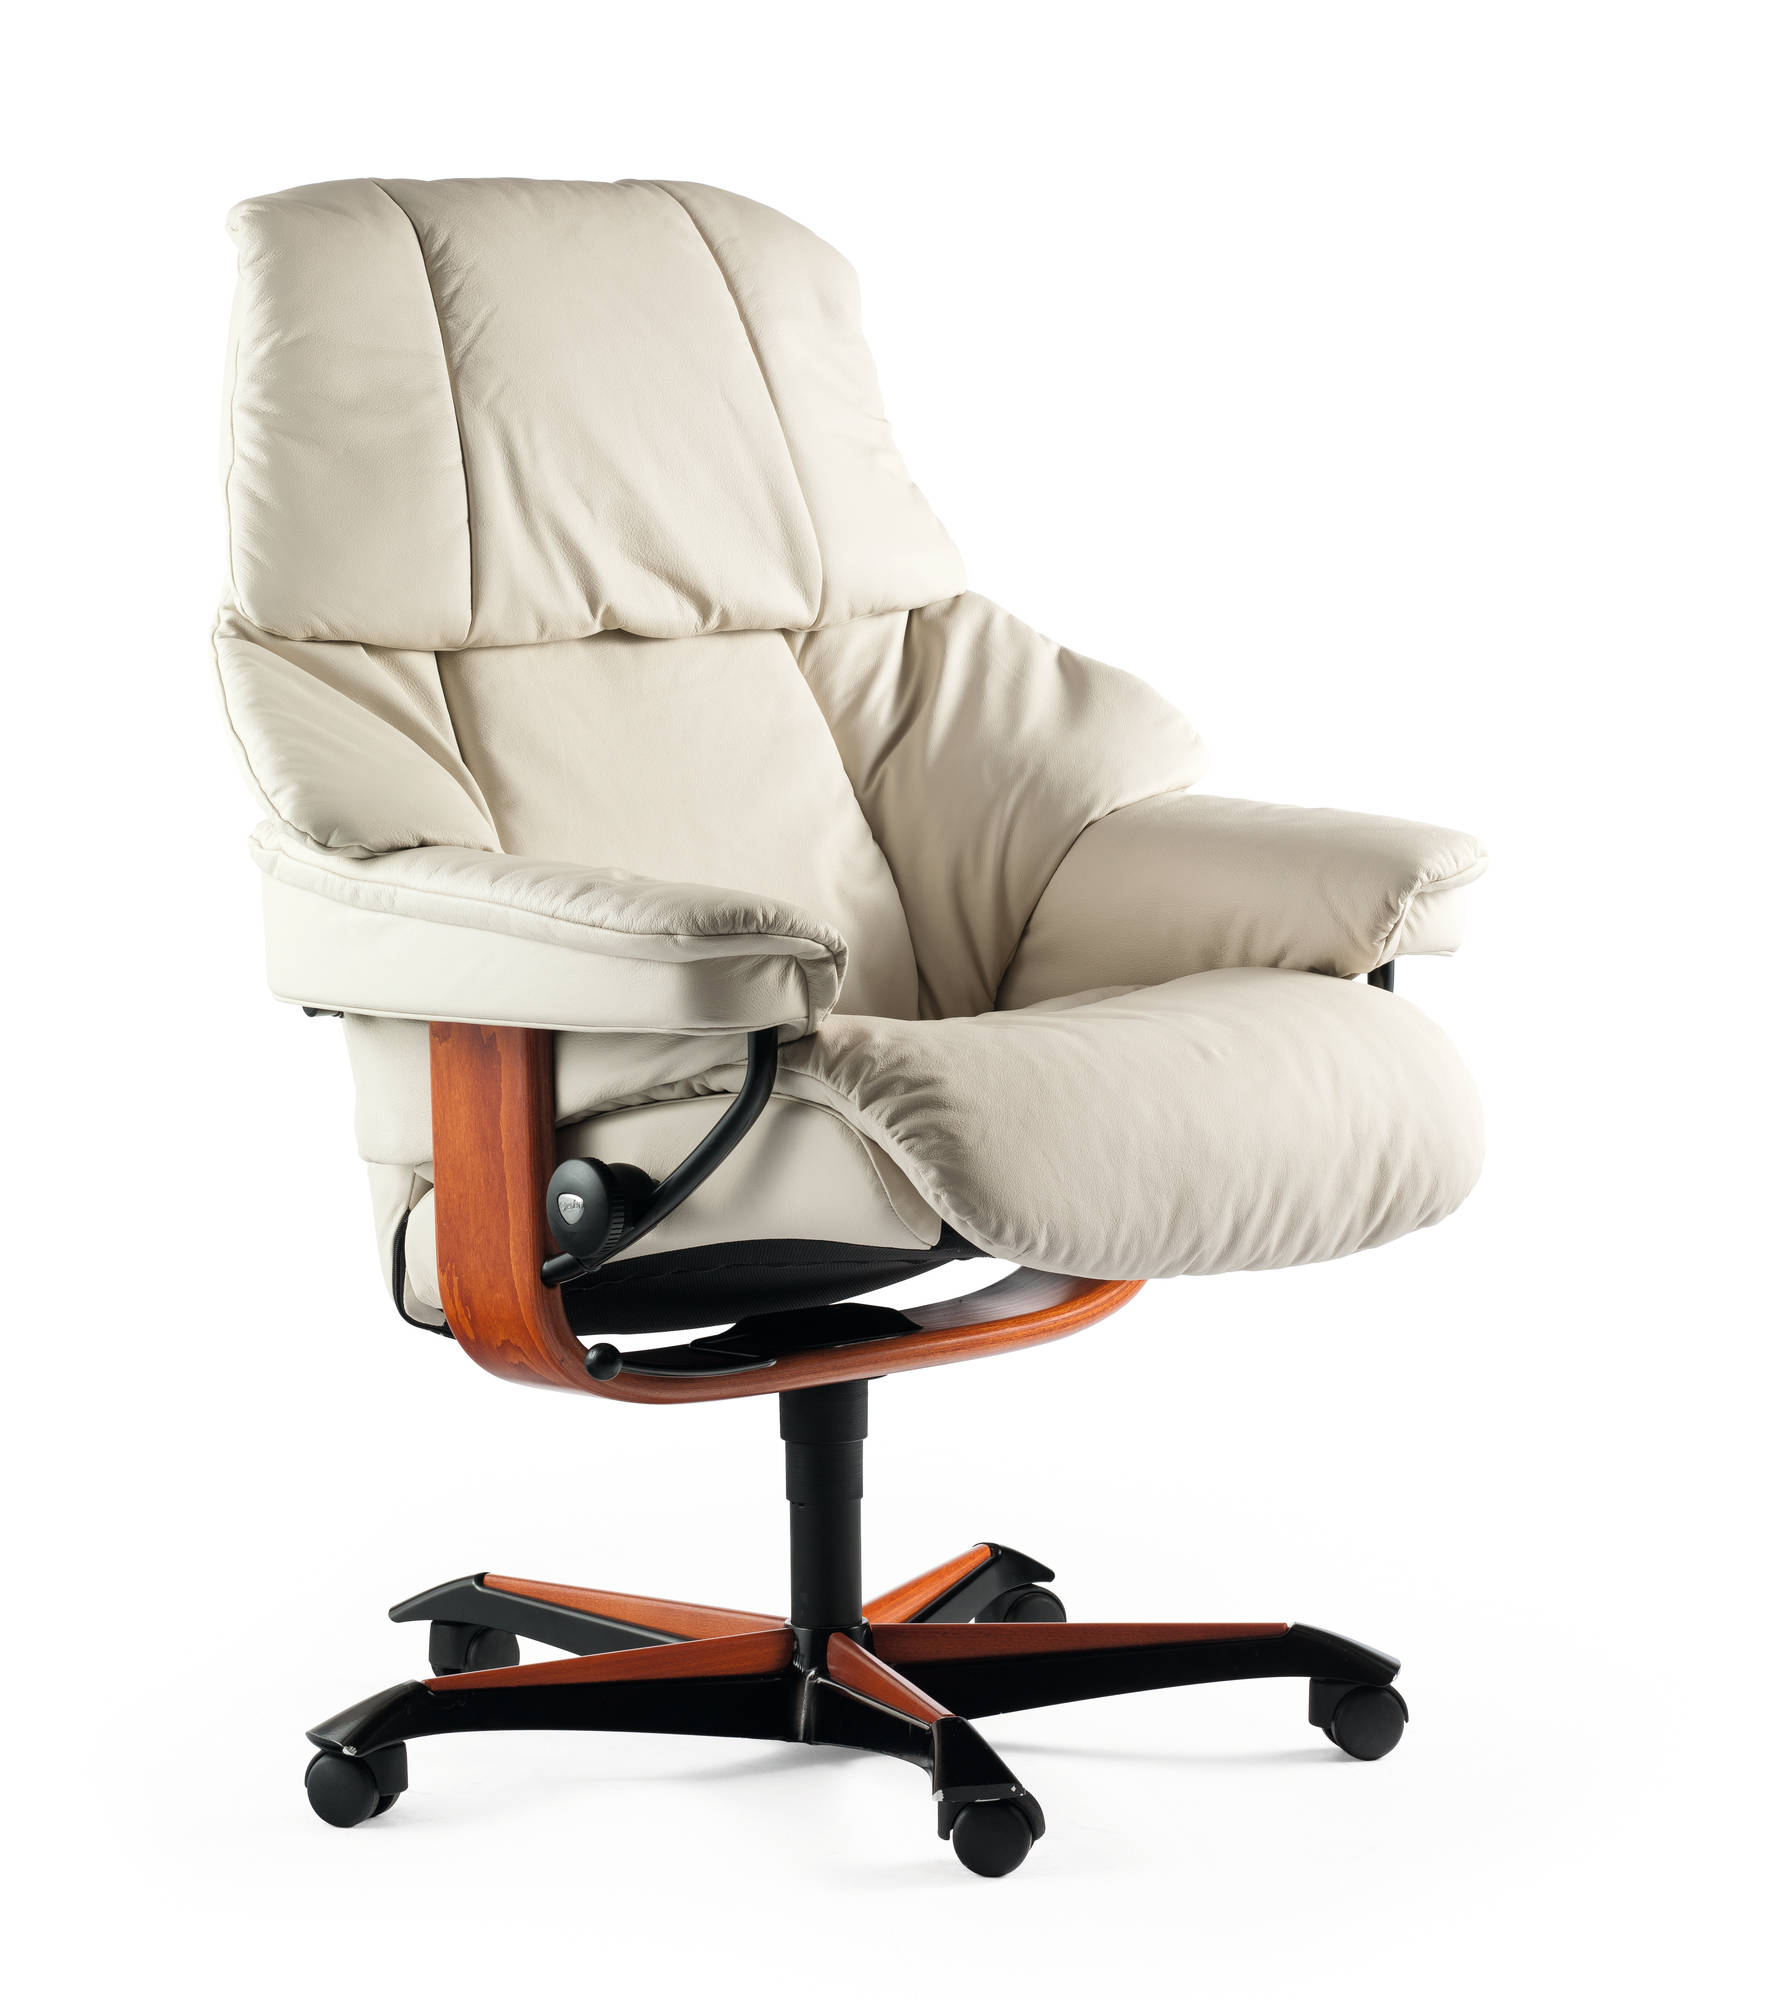 Etonnant Reno Recliner Office Chair By Ekornes